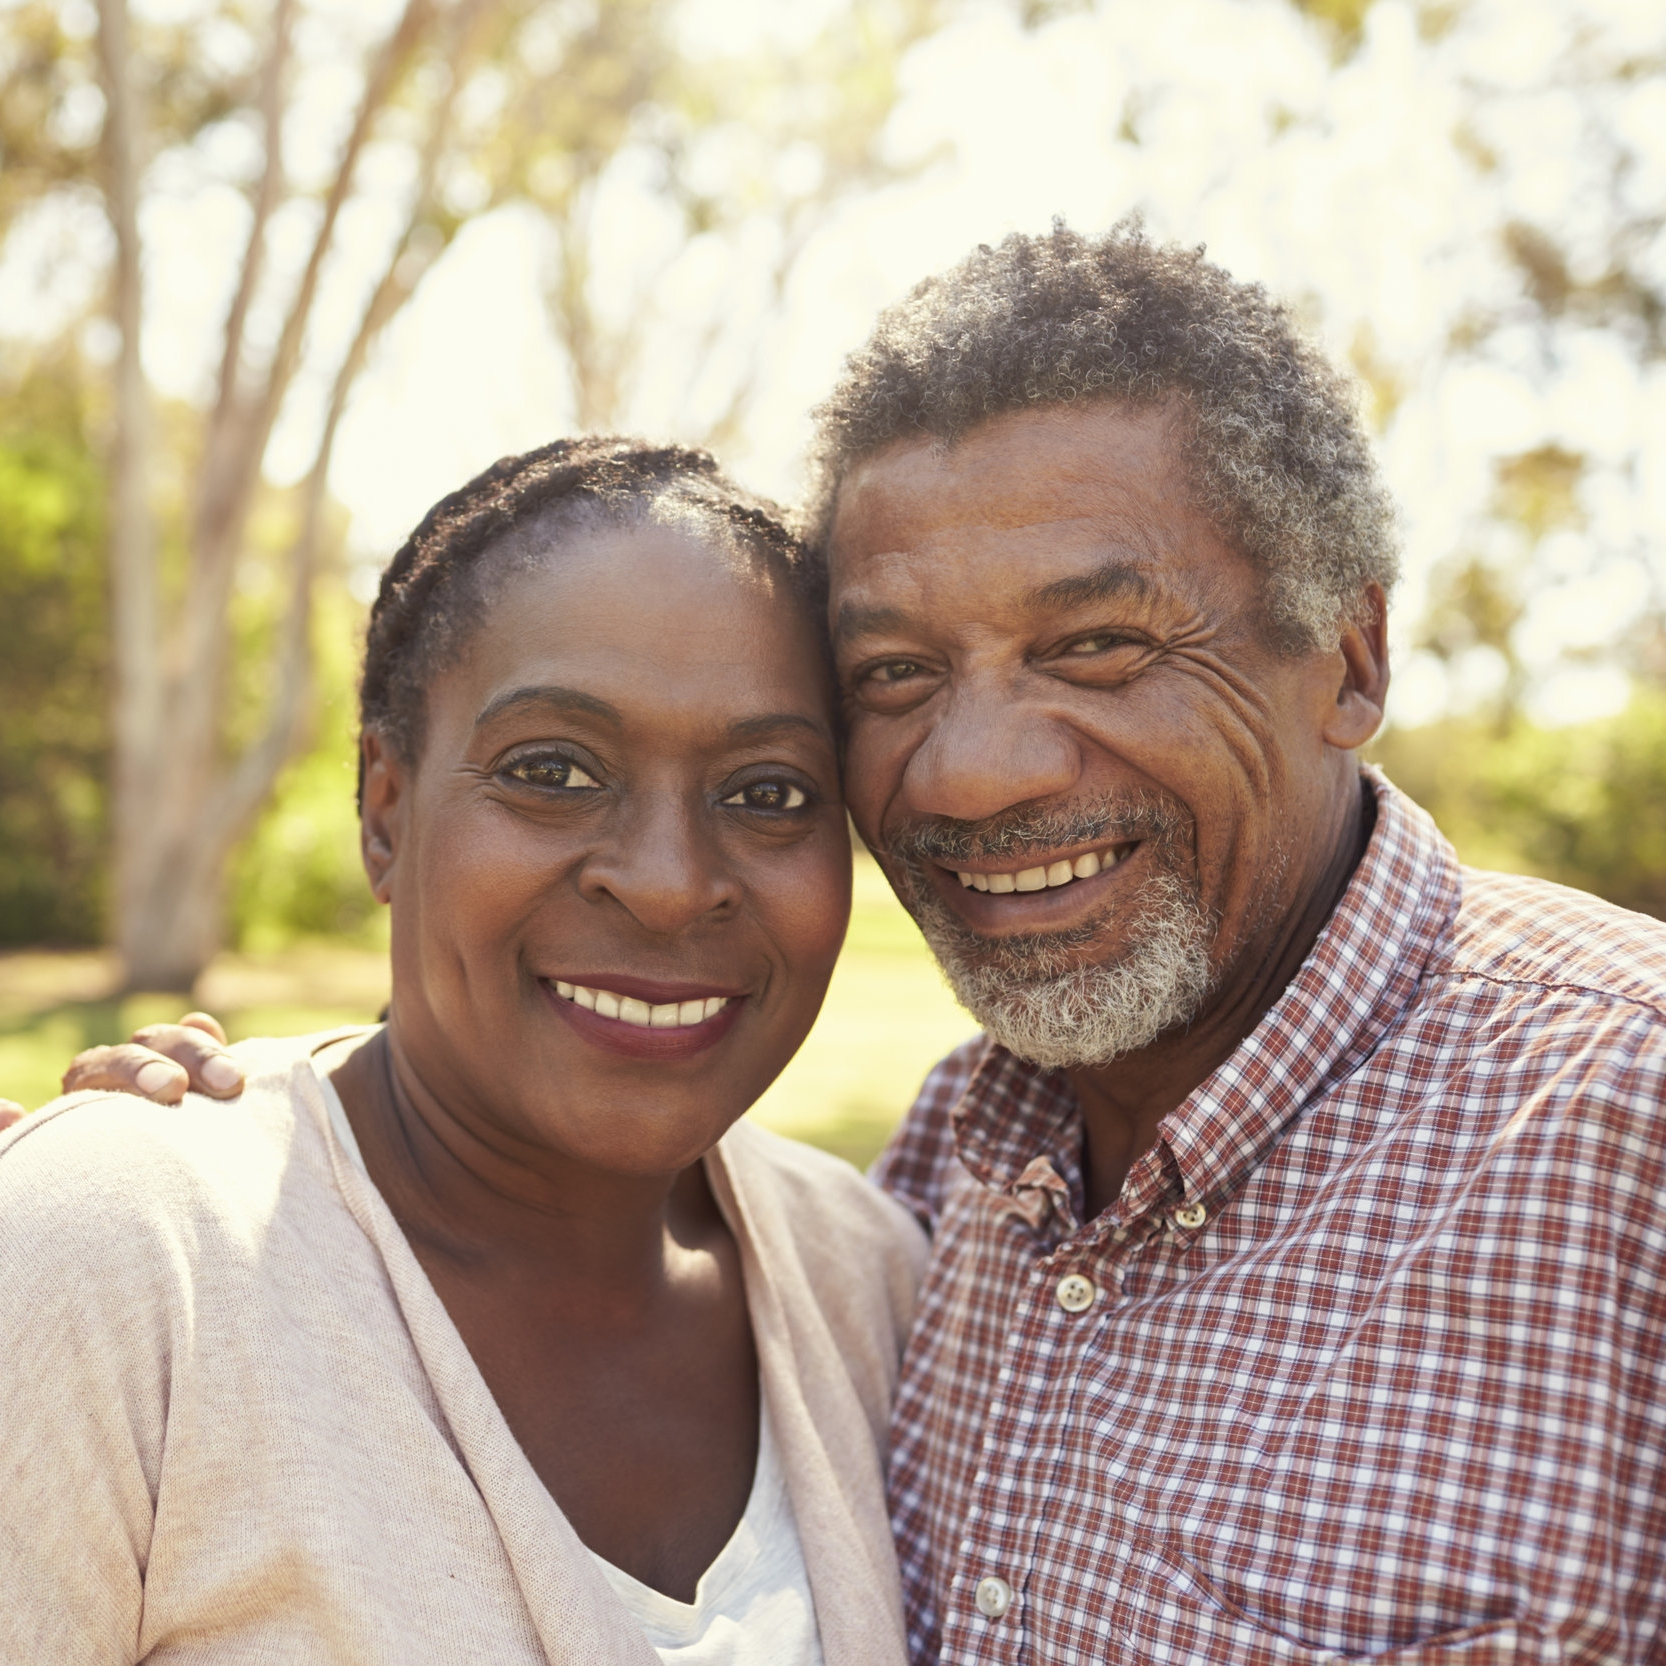 Our clients value independence and self-sufficiency, and want to maintain both, especially as they age. -